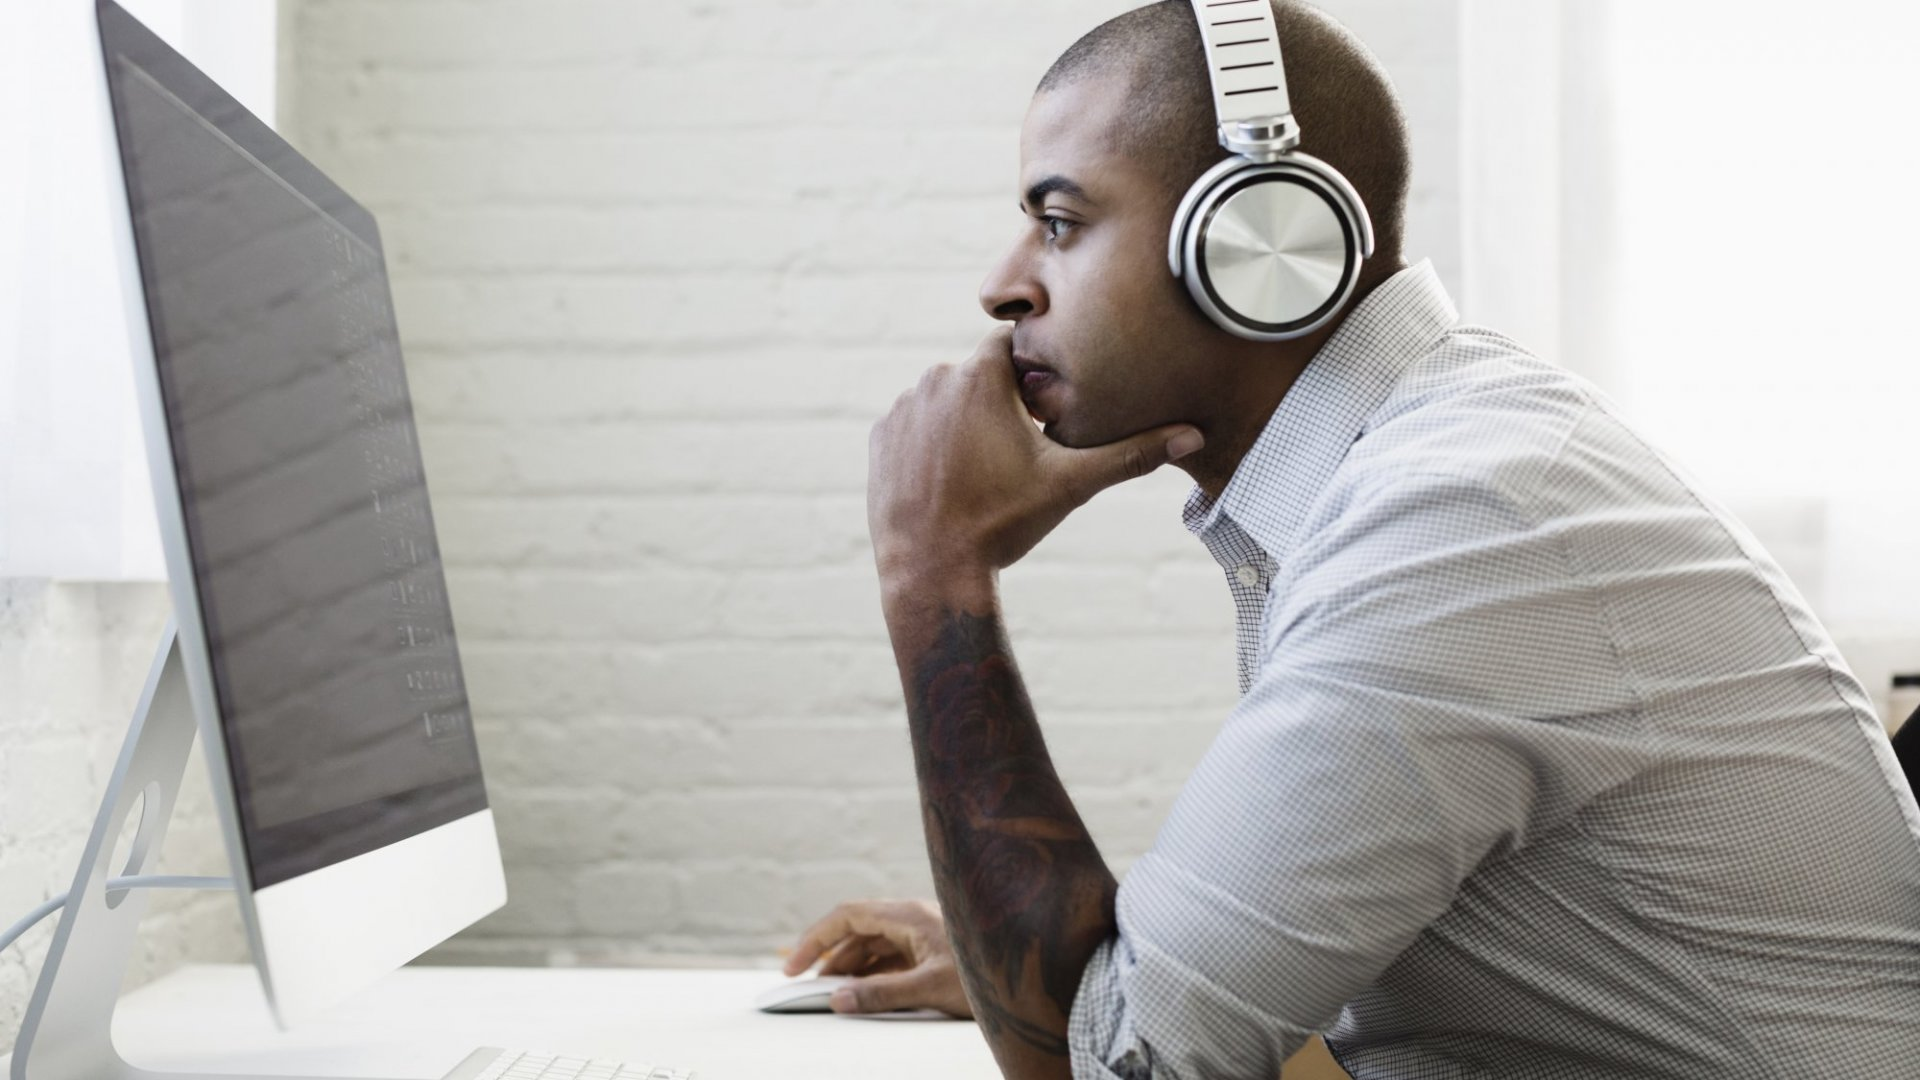 Replace Your Music With This to Be More Productive